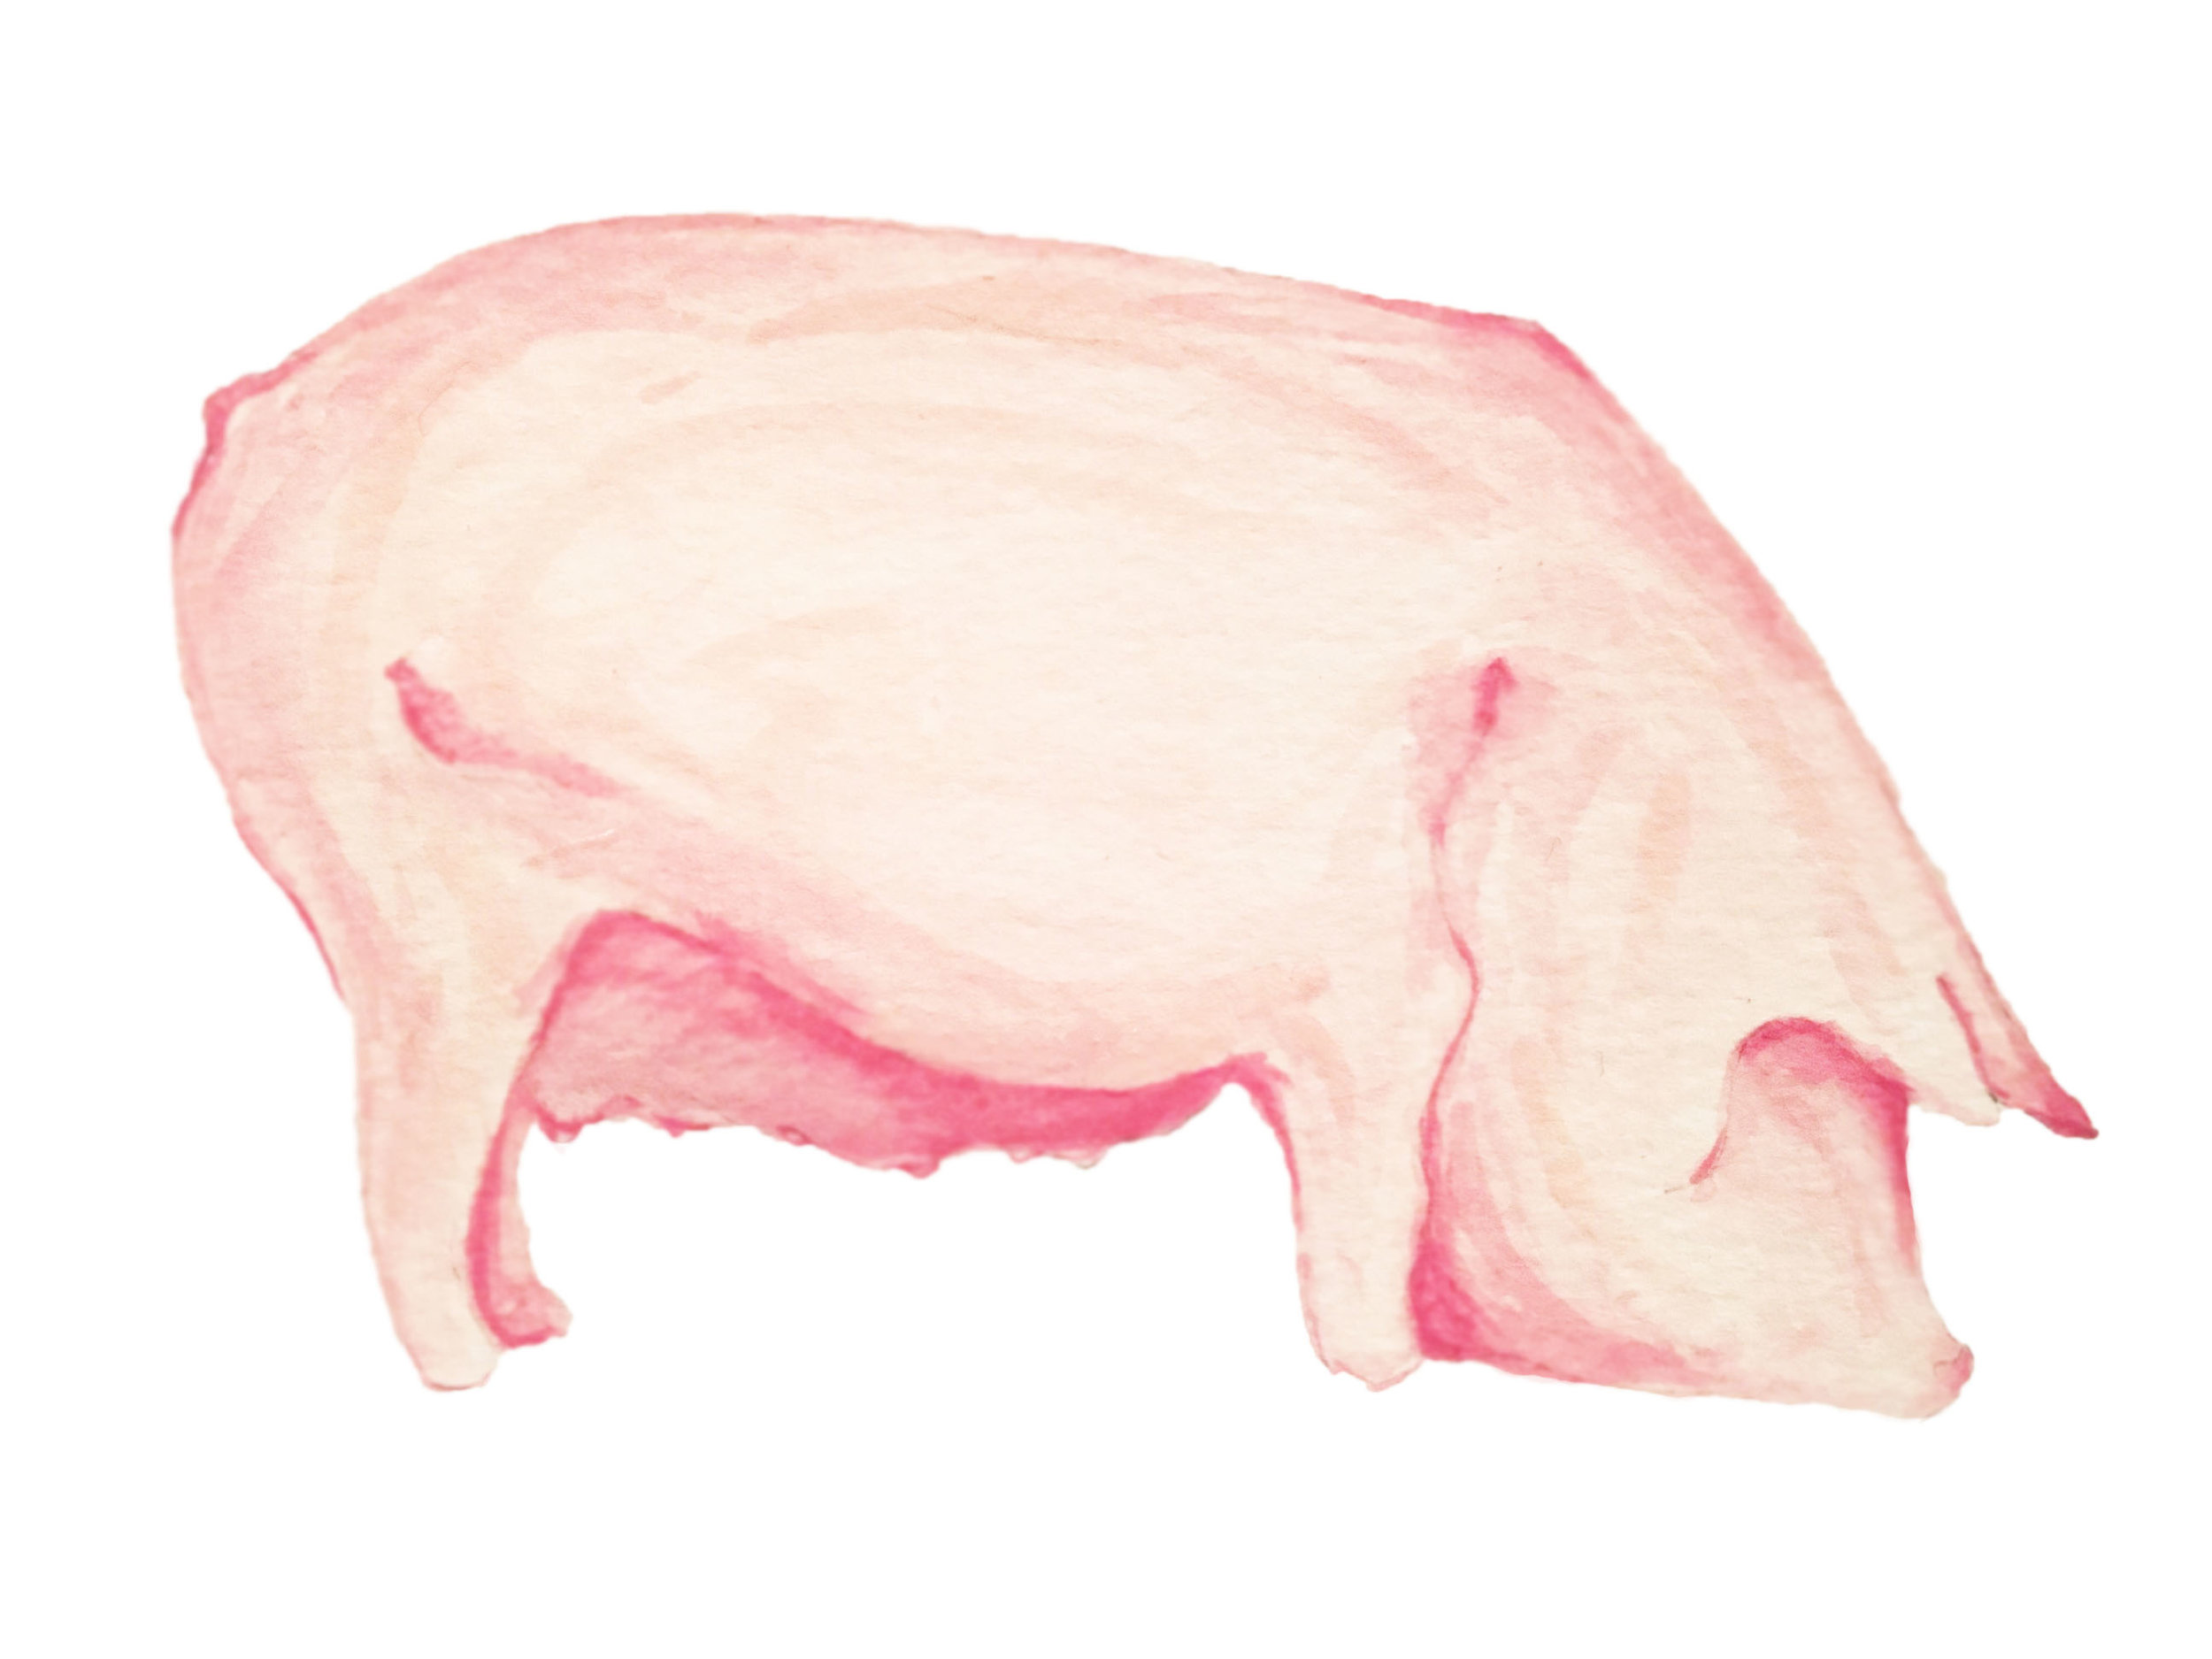 2017.02.08_Pig Version 2_Light.jpg